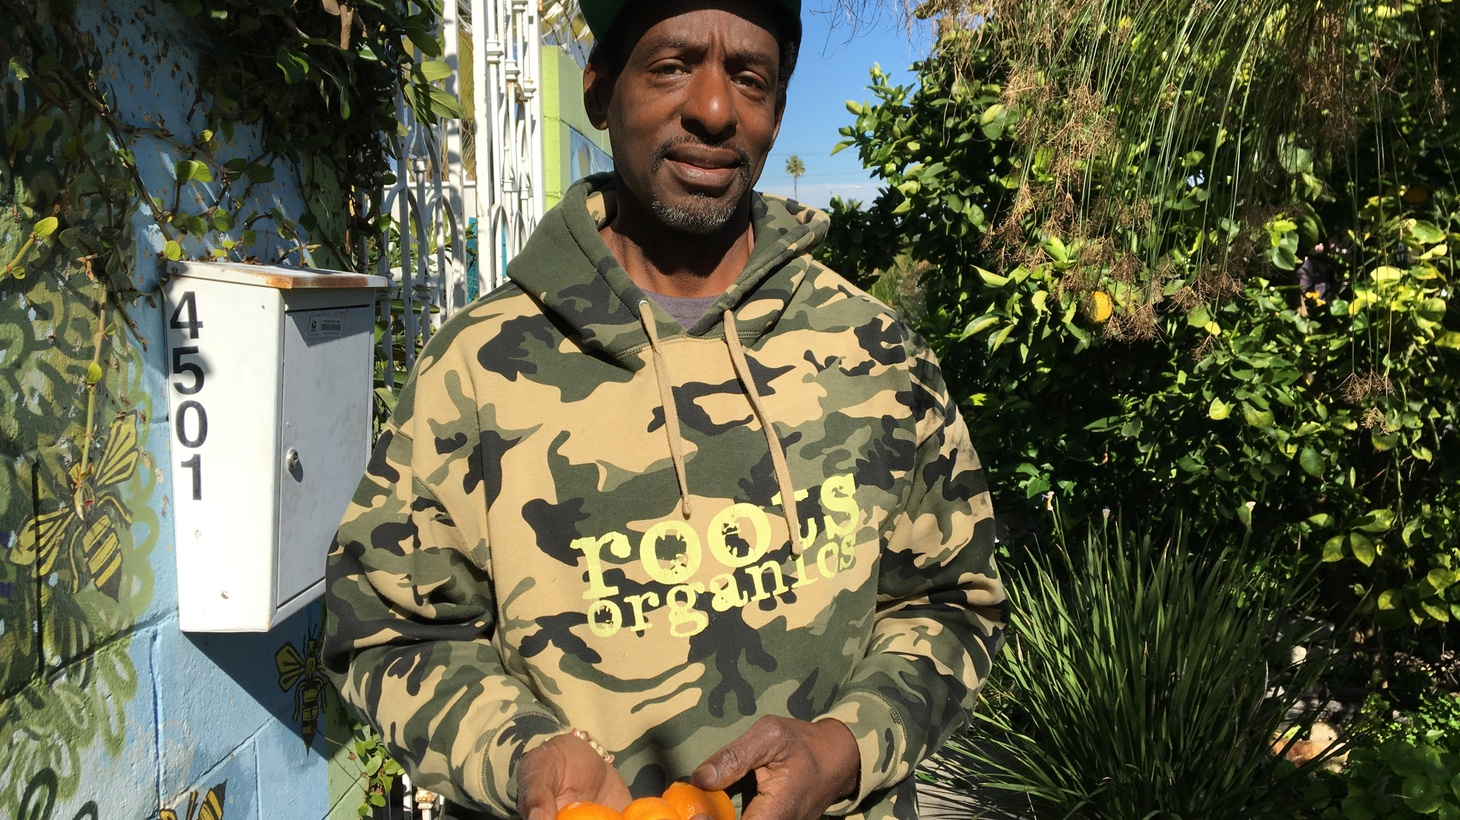 """South LA's """"Gangsta Gardener"""" has won out. Ron Finley, a community gardener and activist for healthy food in underserved neighborhoods, has managed to overcome a threat of eviction after successfully buying his property from an Agoura Hills developer."""